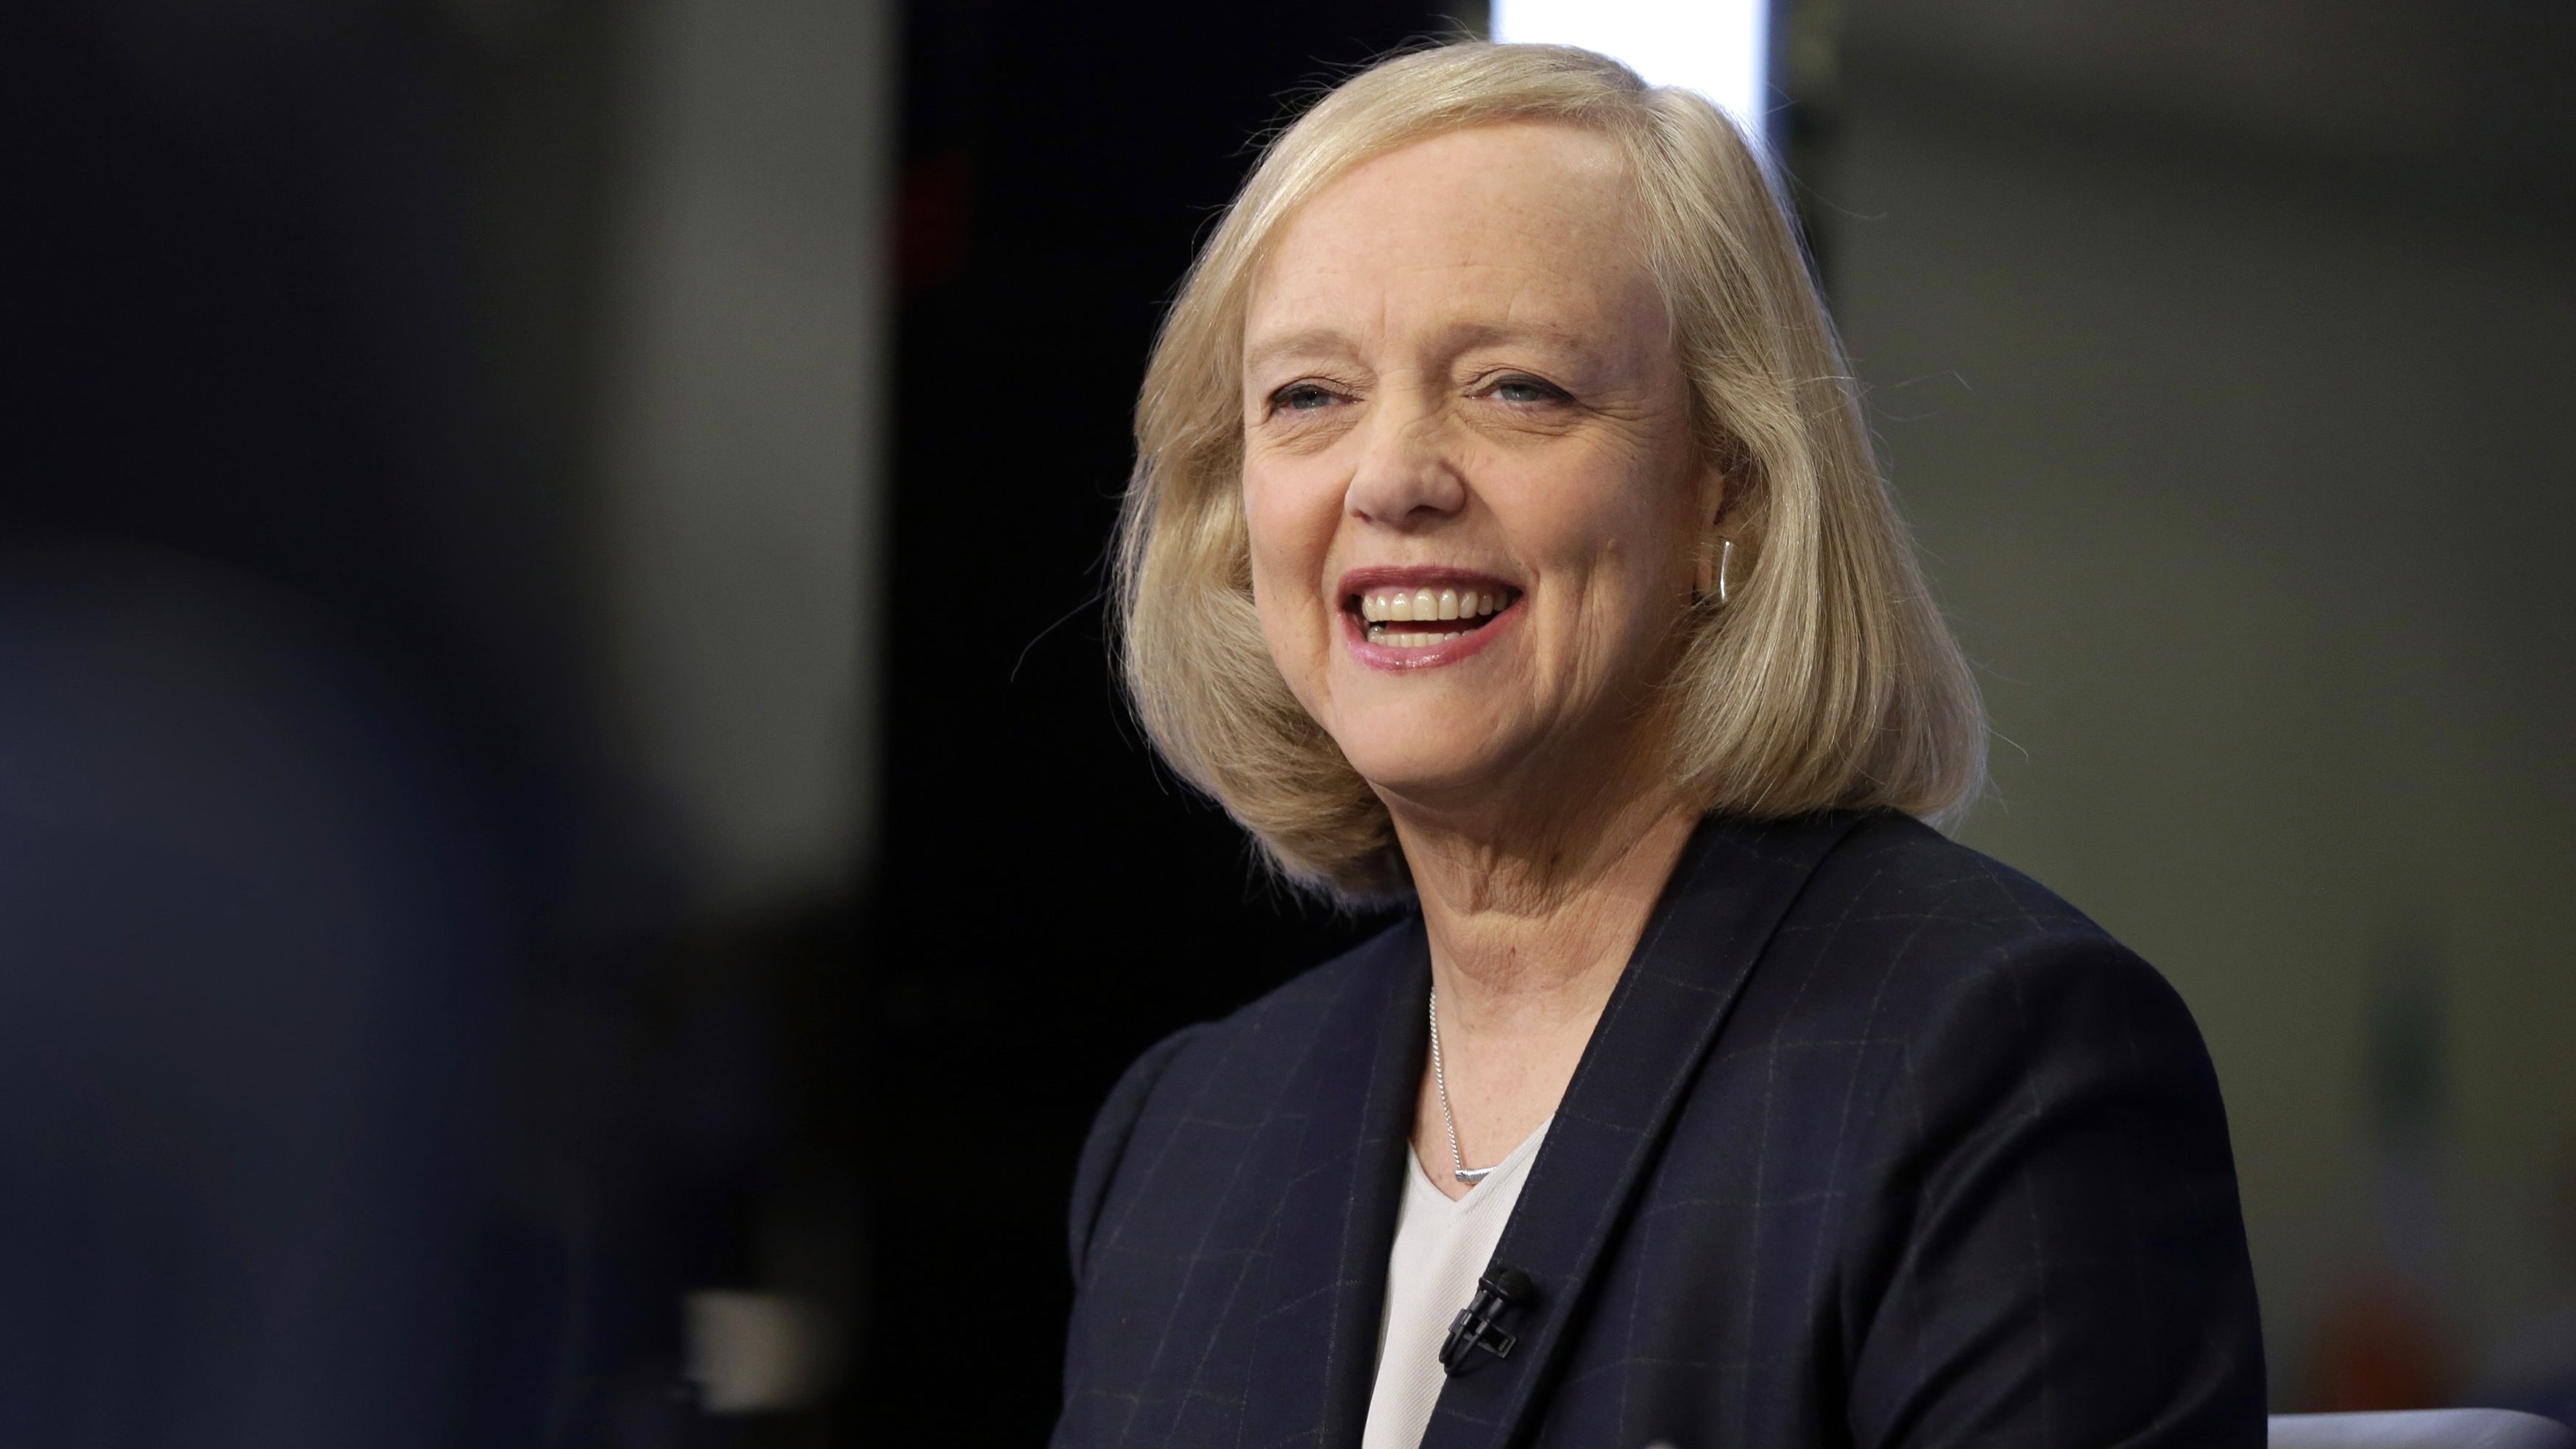 Uber Board Nears CEO Vote, With Jeffrey Immelt Out And Meg Whitman Reportedly Back In